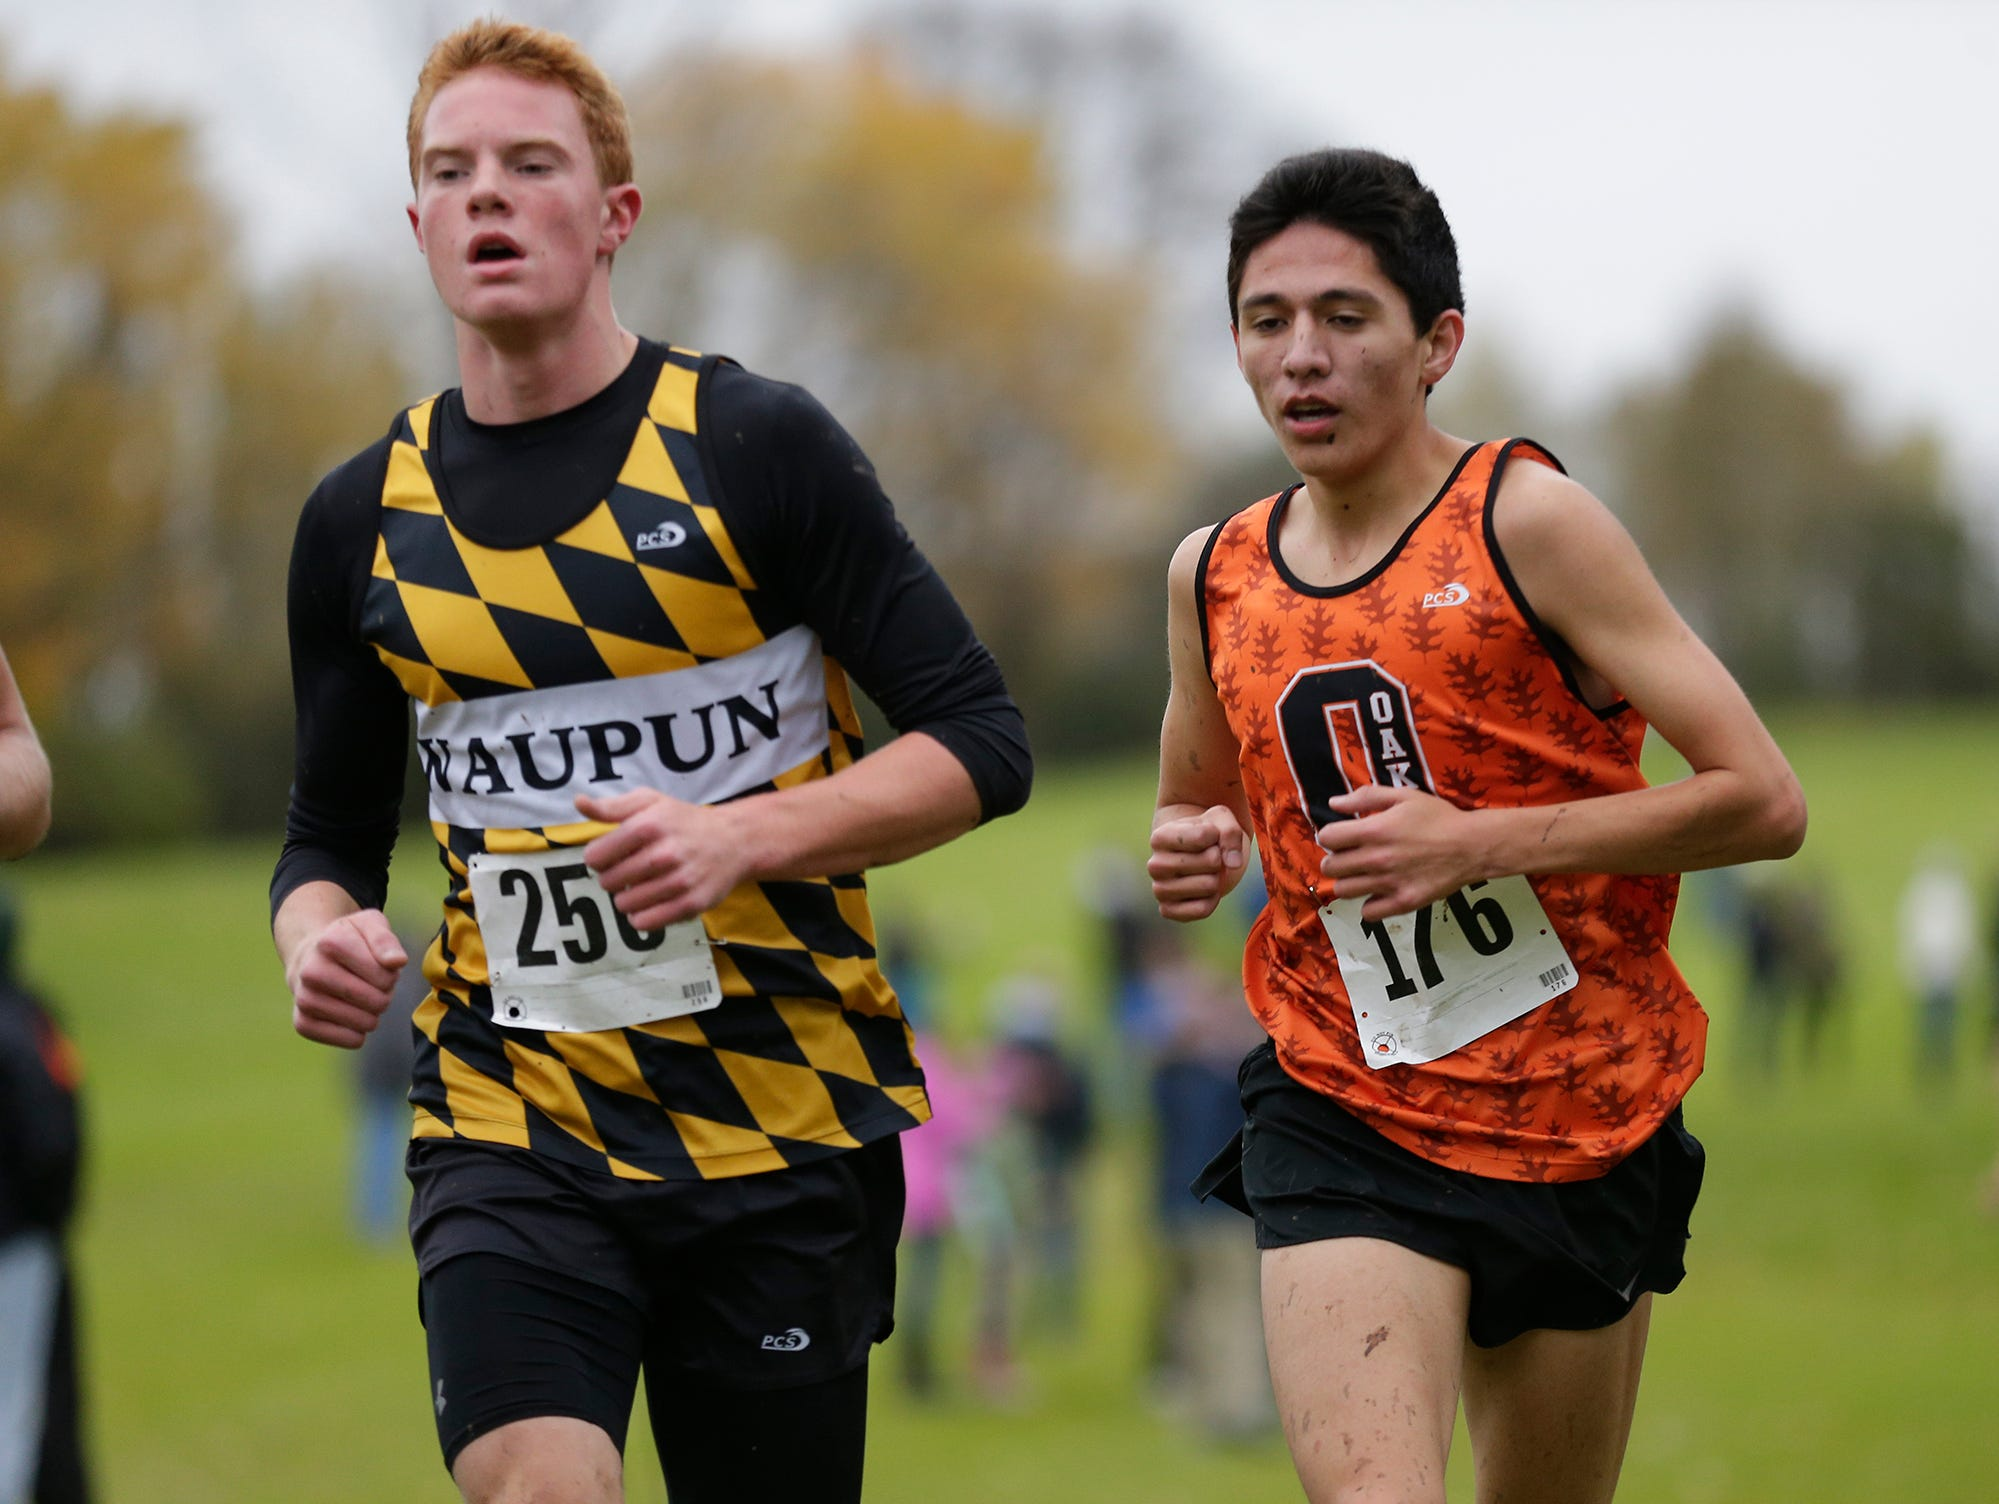 Waupun High School's Rhyer Smit and North Fond du Lac's Diego Charbonneau run in the WIAA Division two Mayville sectional cross country meet at the Mayville golf course Friday, October 19, 2018. Doug Raflik/USA TODAY NETWORK-Wisconsin